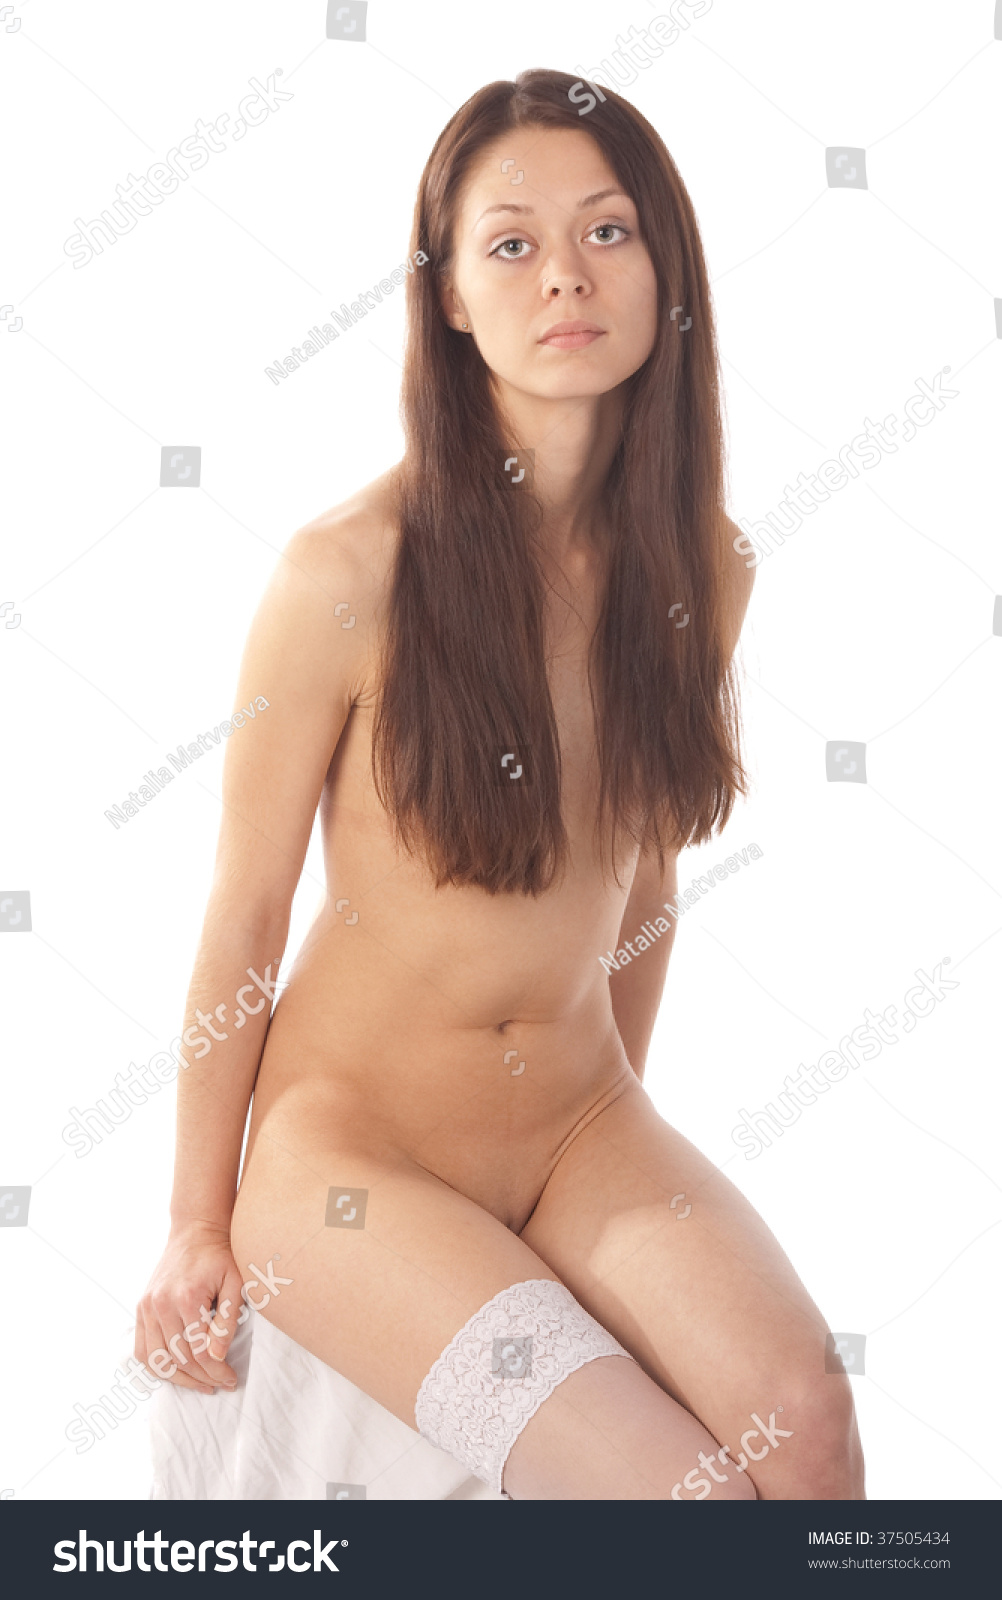 stool passing naked girl pic